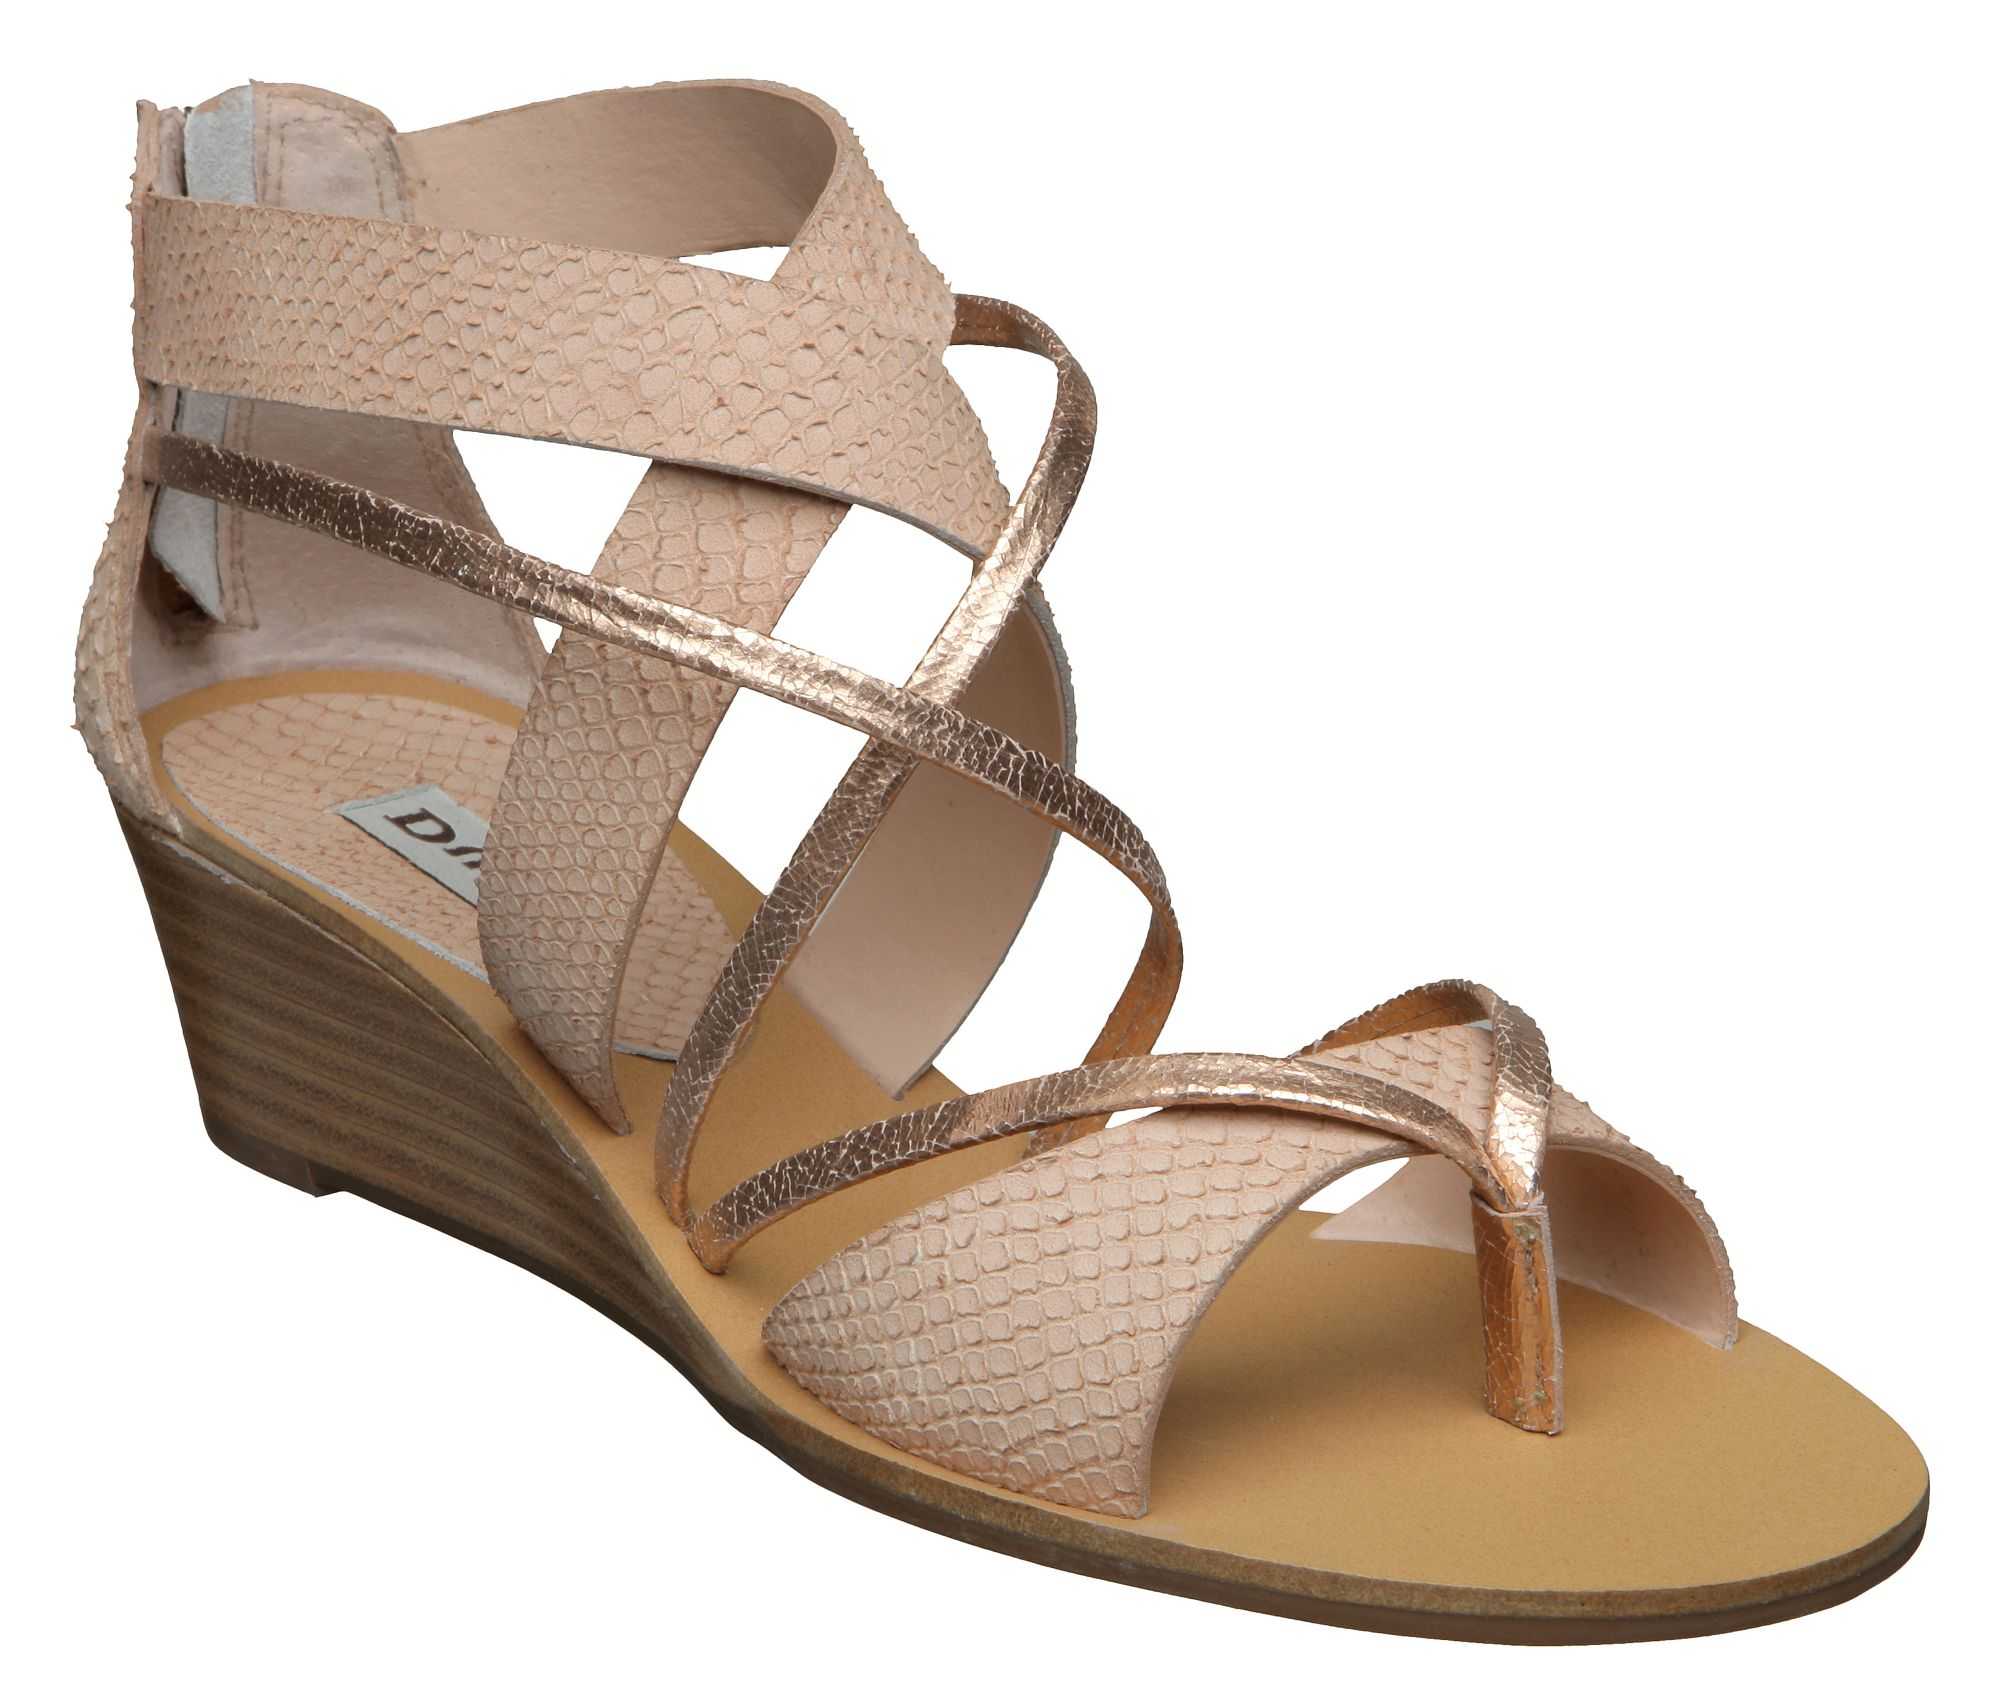 Dune Gogo D Gladiator Back Zip Sandals In Brown Natural